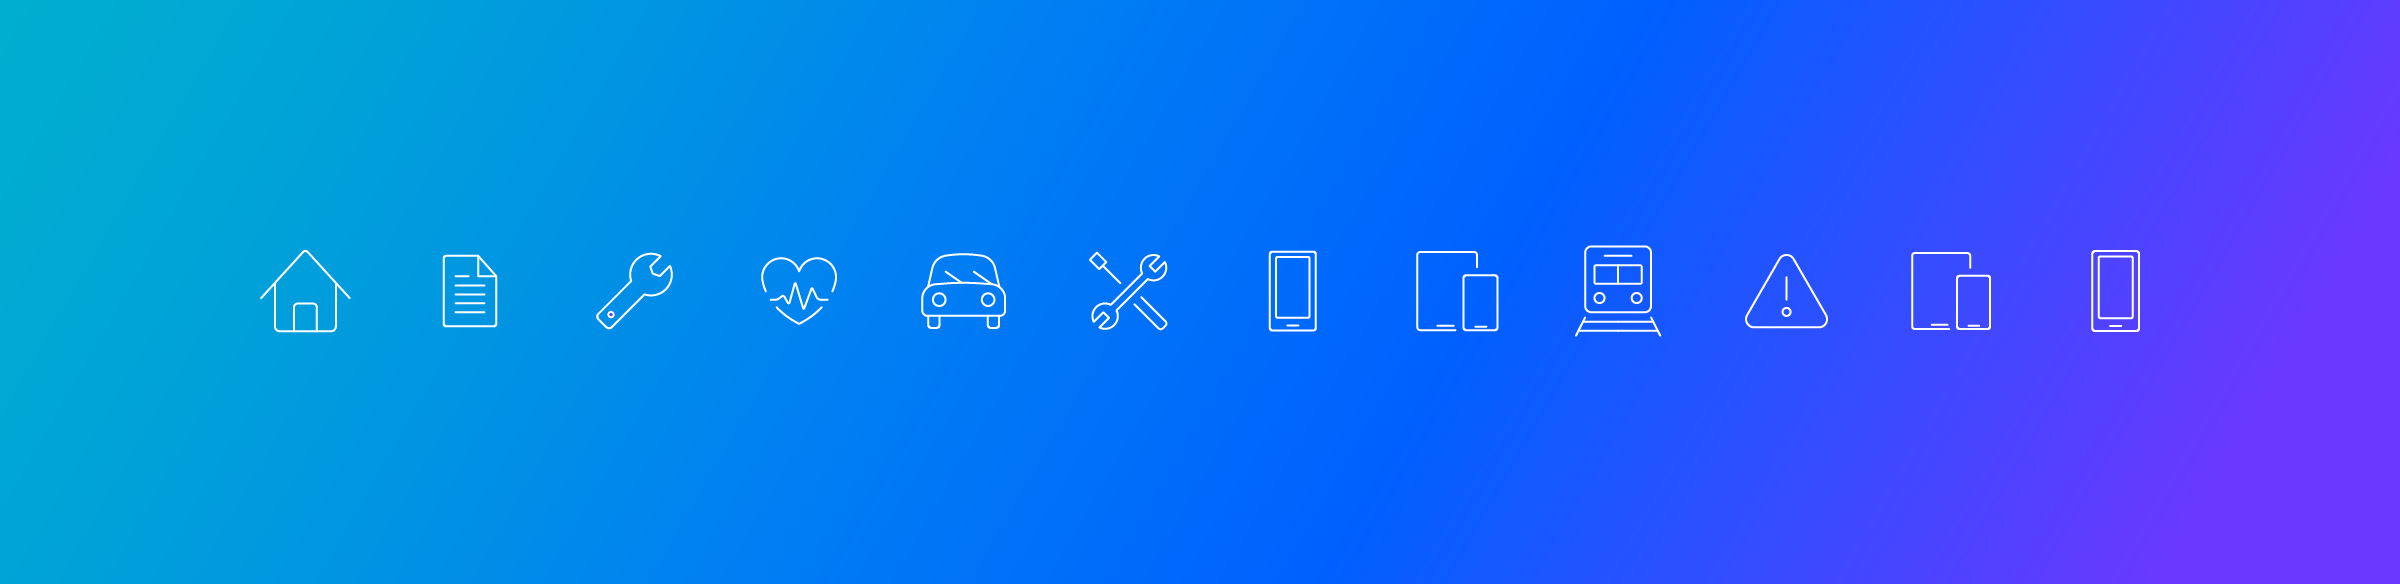 Web Design and Development for Software Company Animated icons